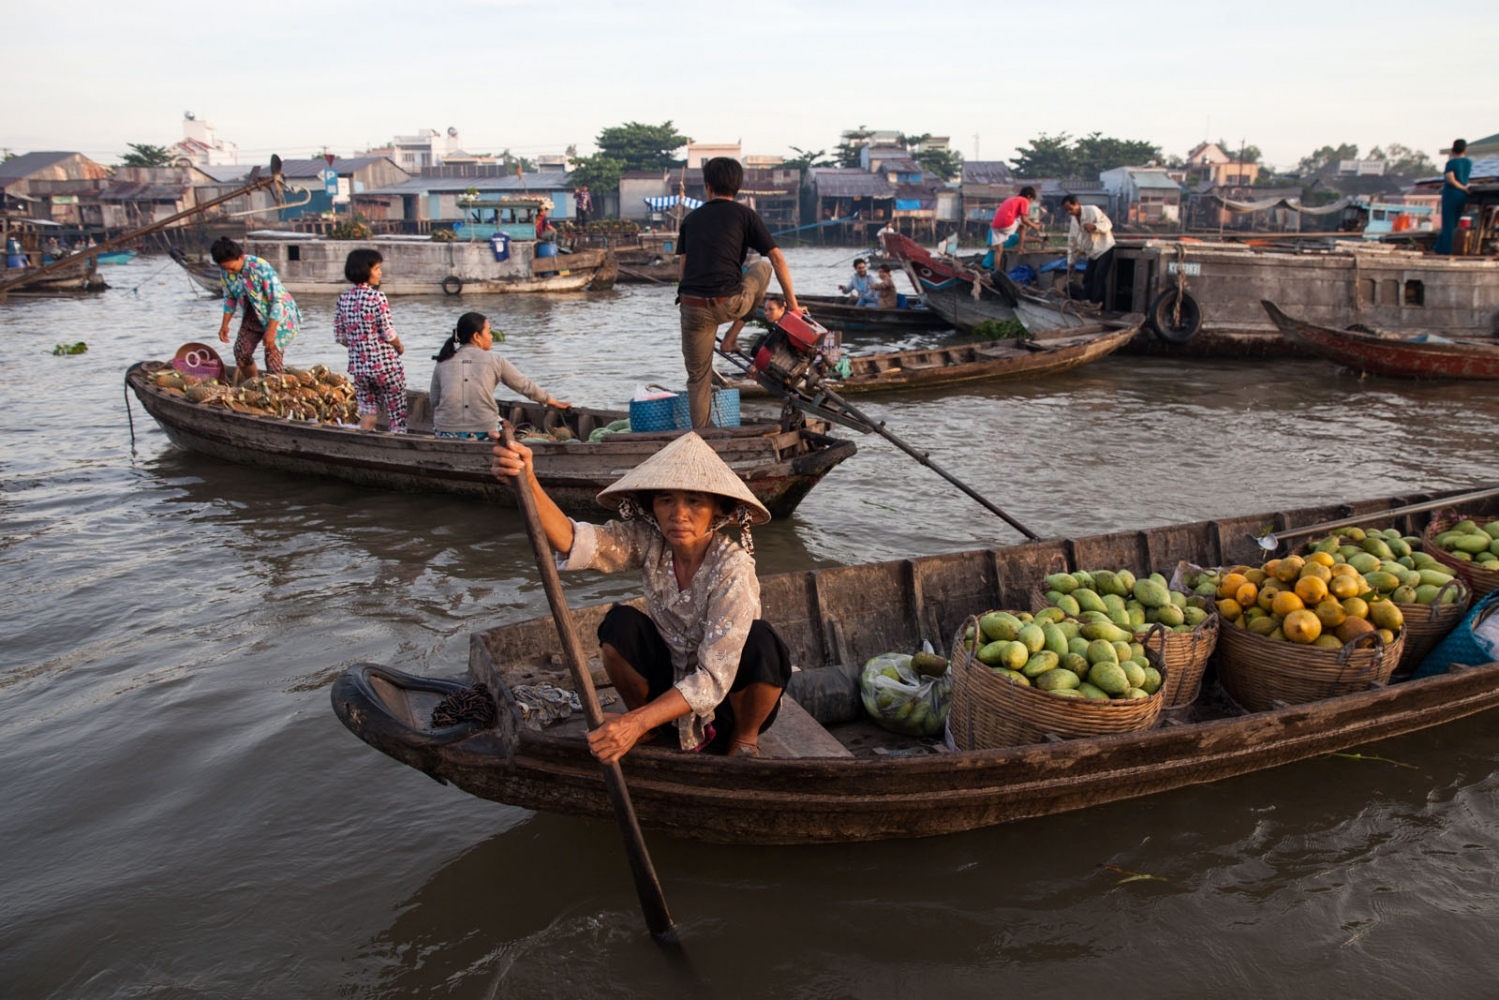 The most iconic scenes of the cultural life on the Mekong Delta is that of the floating markets that exist on the rivers. Here at Cai Rang floating market in Can Tho city, the largest floating market in the Delta, fruit vendors are busy trading at dawn. Unfortunately, scenes like this are becoming rarer and rarer as the popularity of floating markets by local vendors declines. This is due to improved infrastructure in the form of roads and bridges which they prefer for their speed and ease of use.